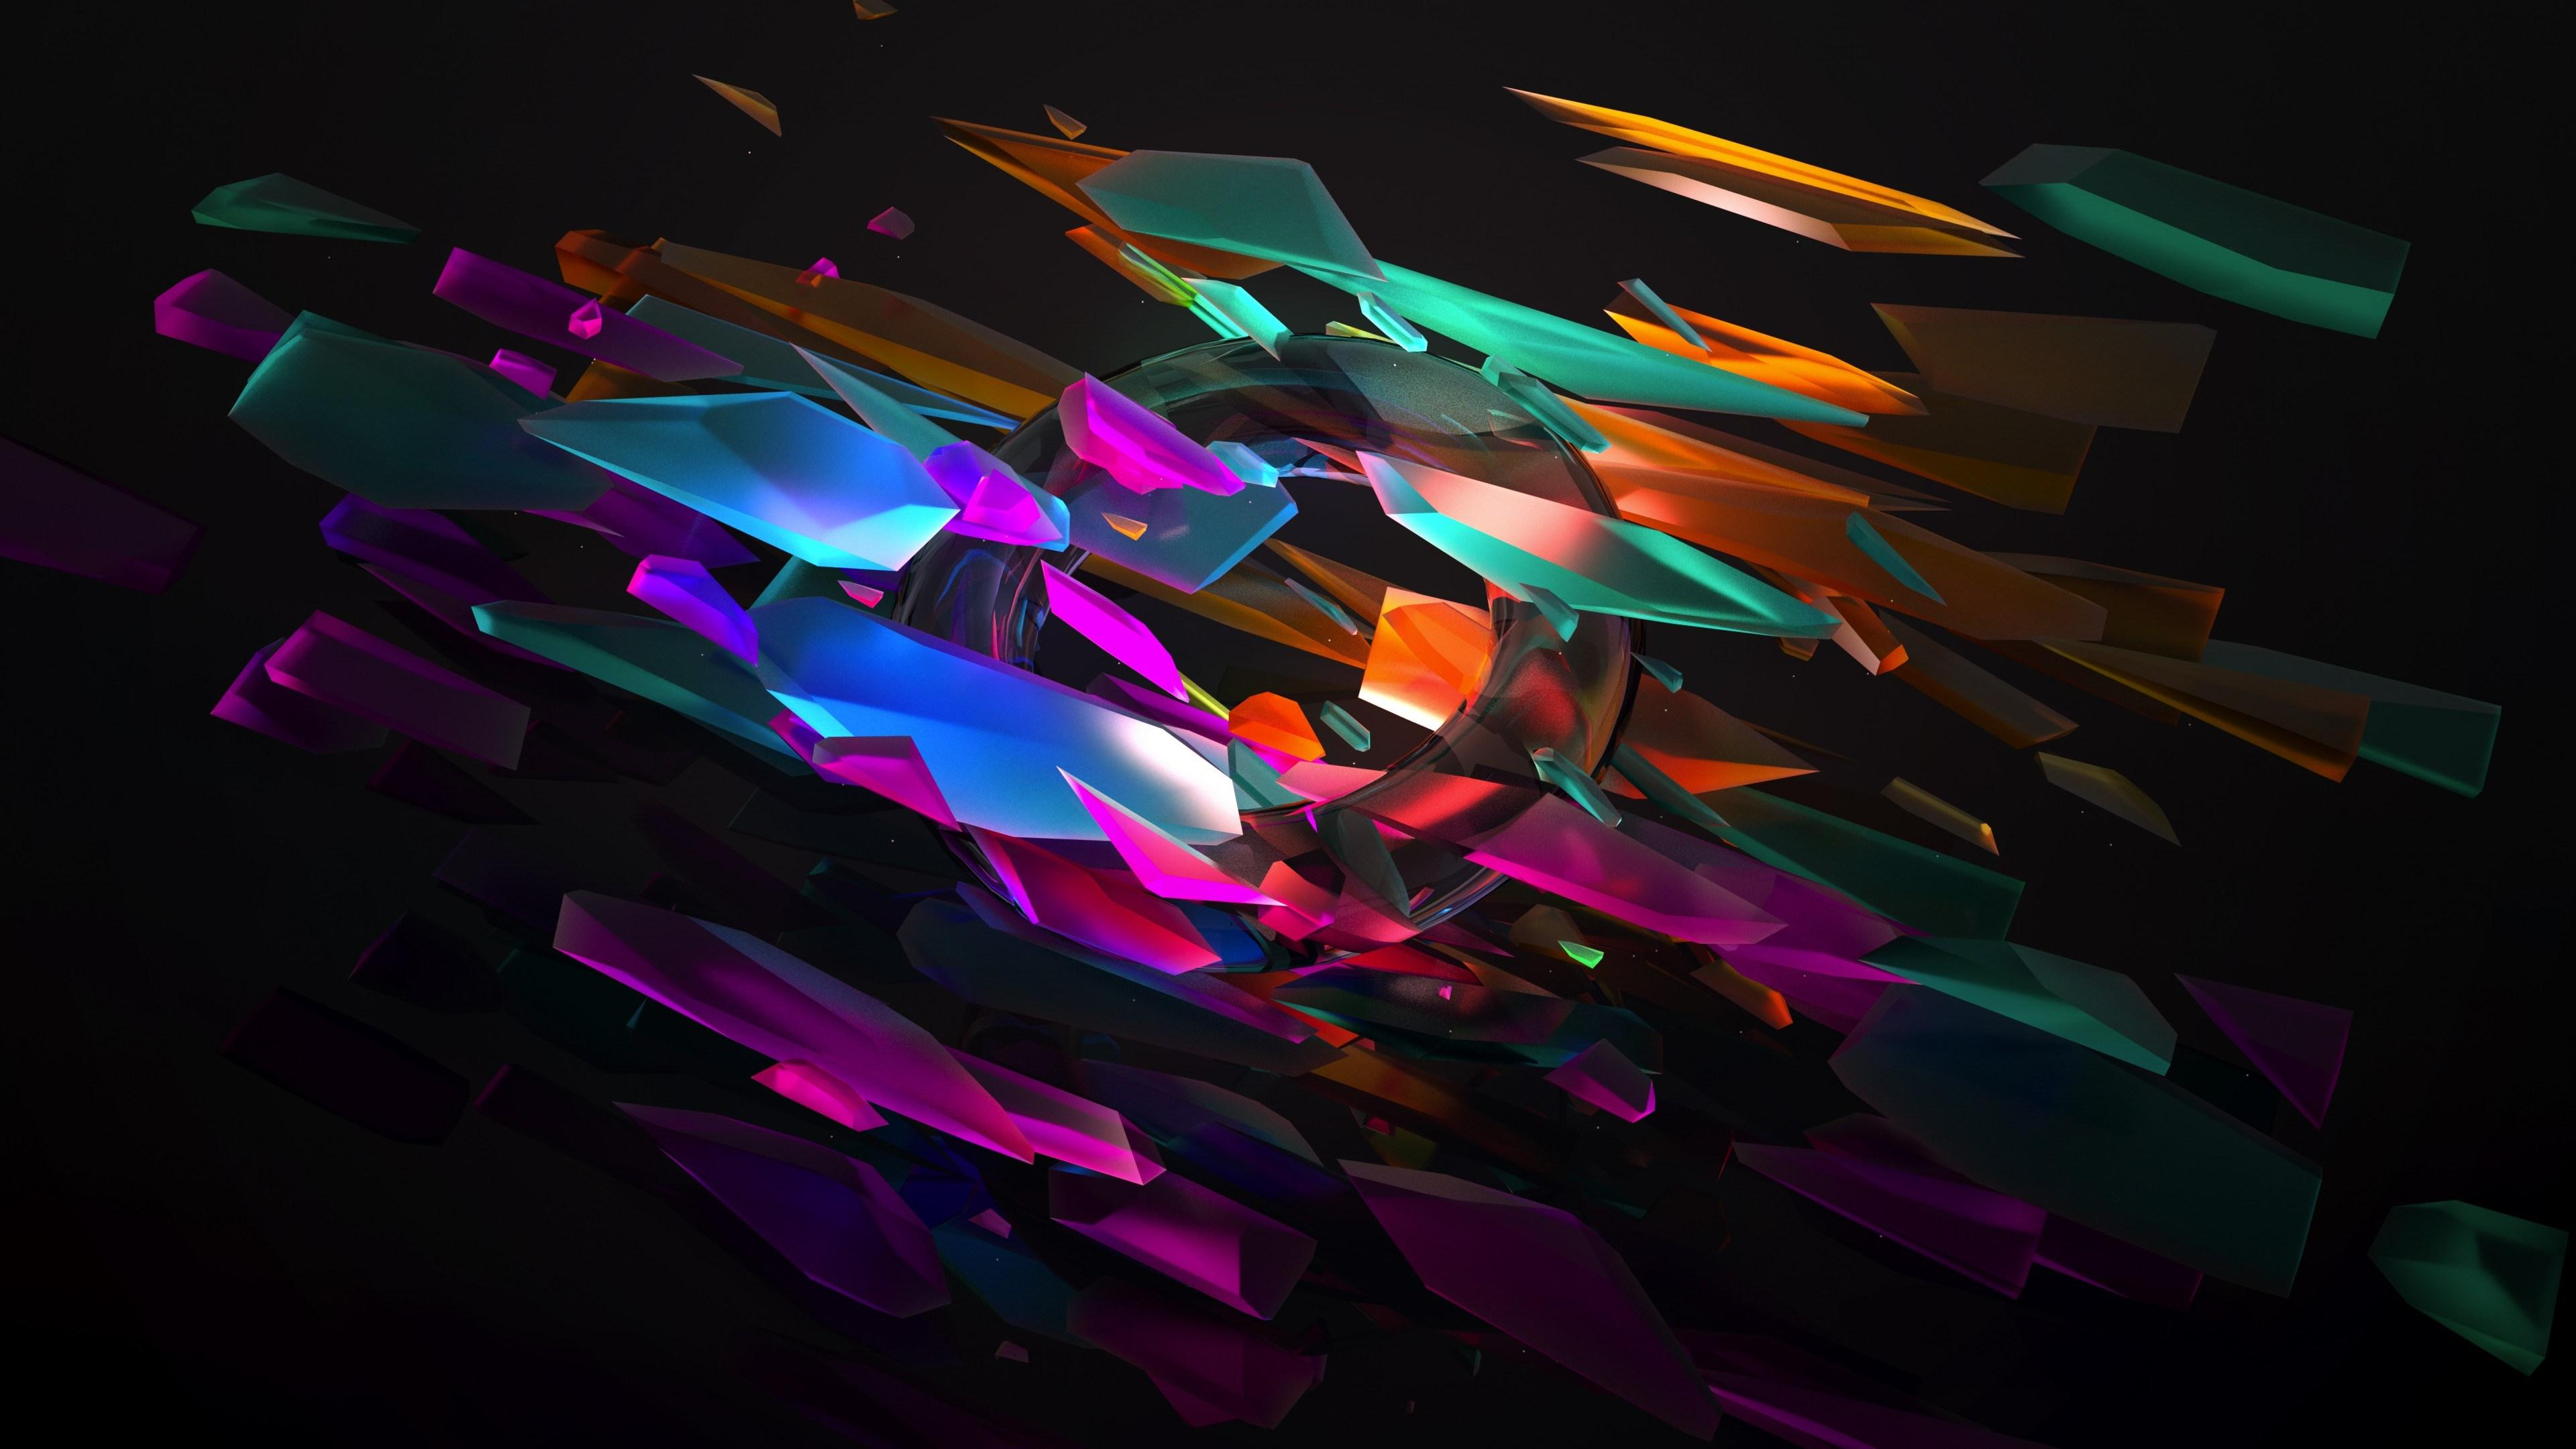 Abstract Shapes 4k Wallpapers Wallpaper Cave